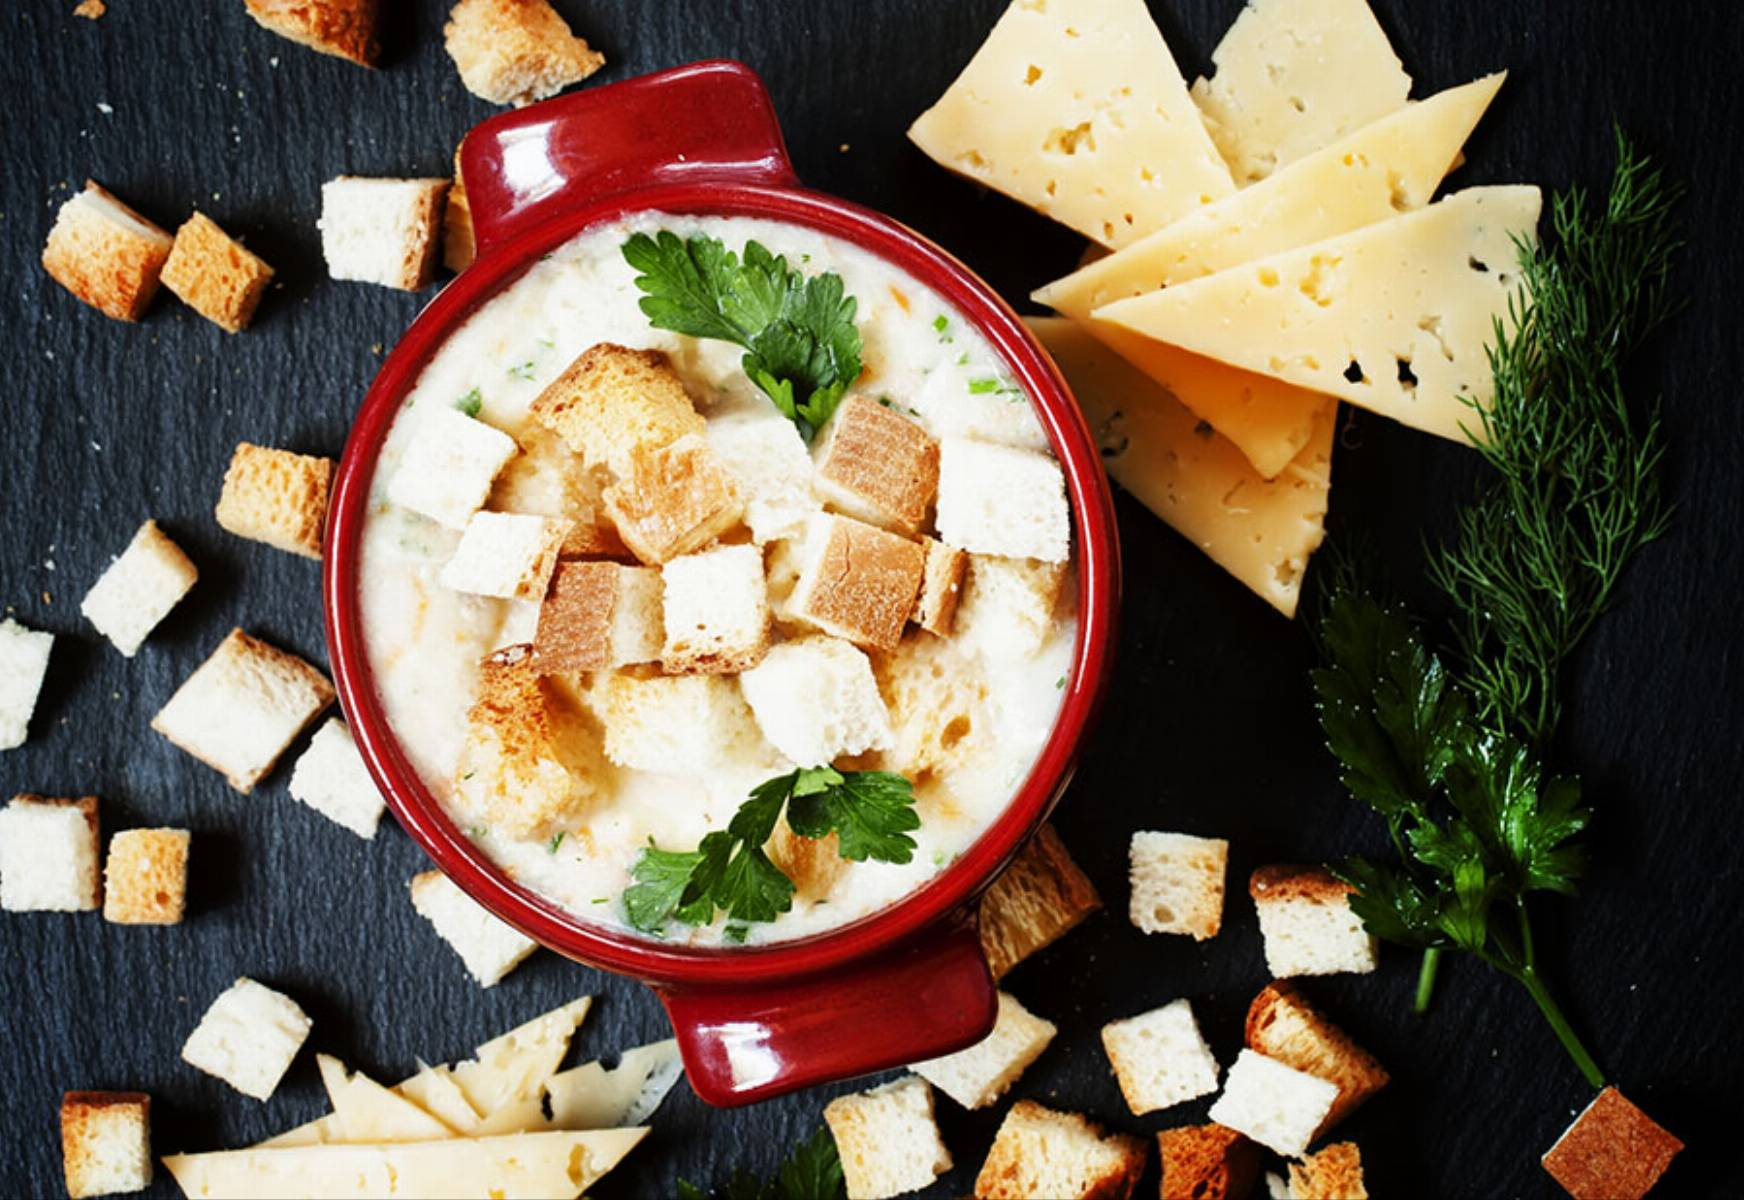 Cheese soup with croutons in red portioned saucepan, top view